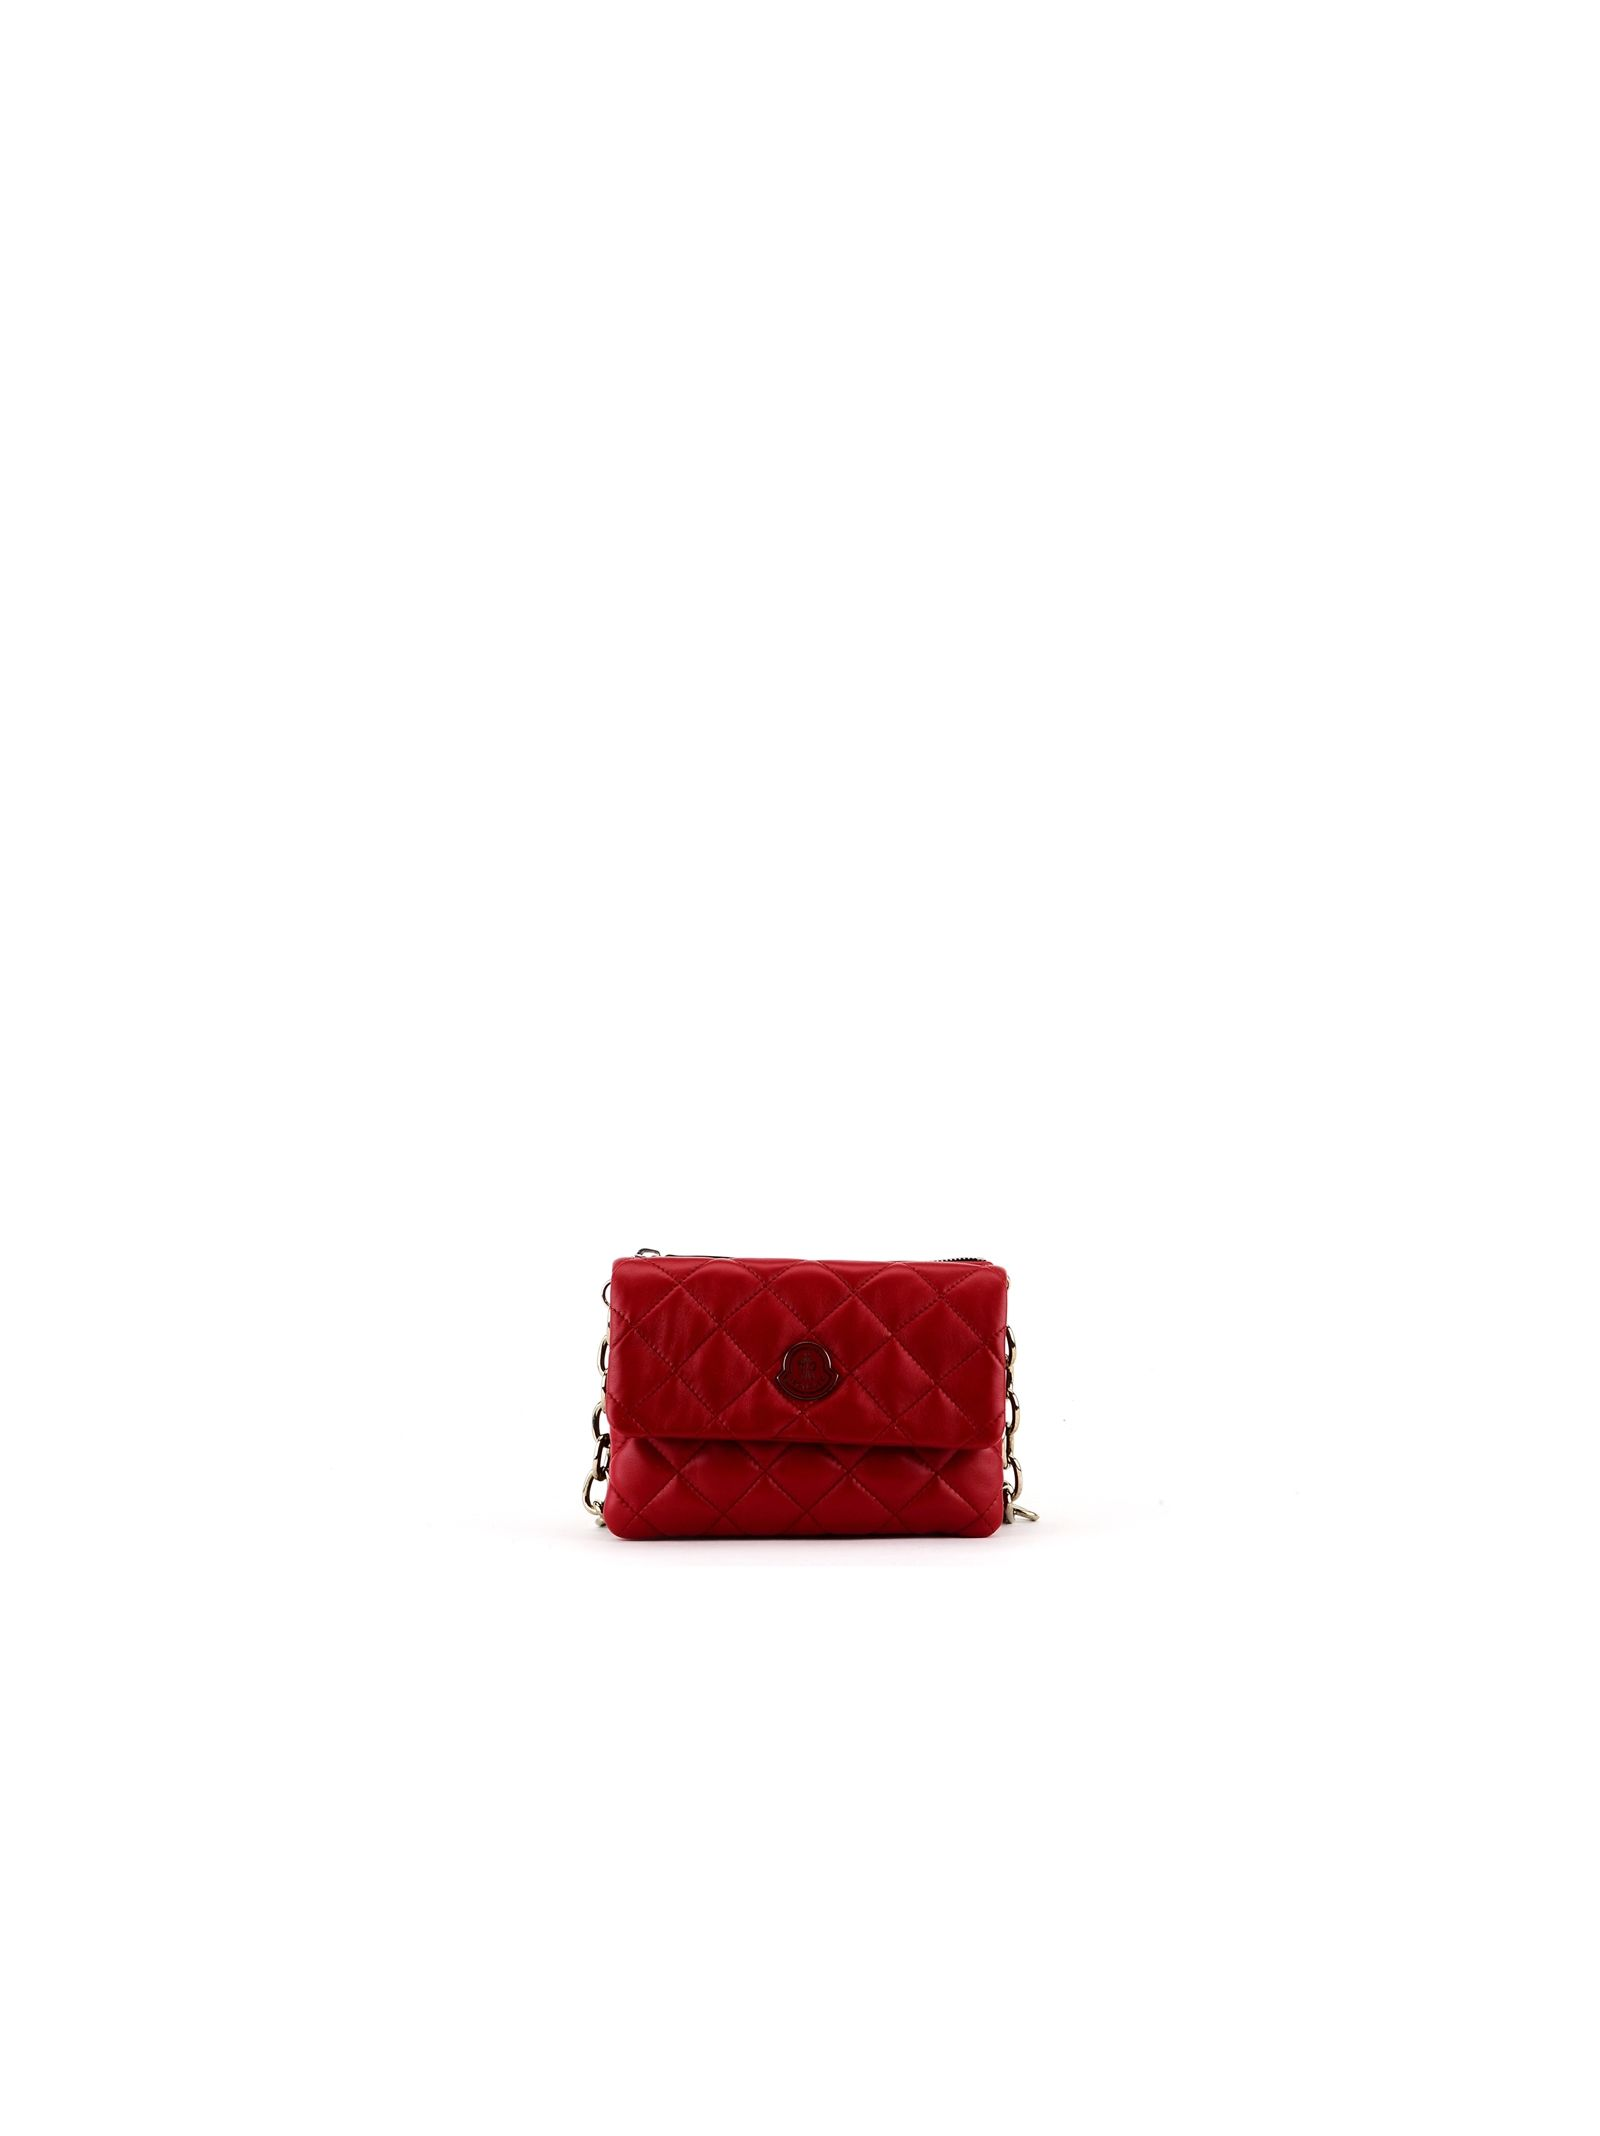 Moncler Poppy Shoulder Bag